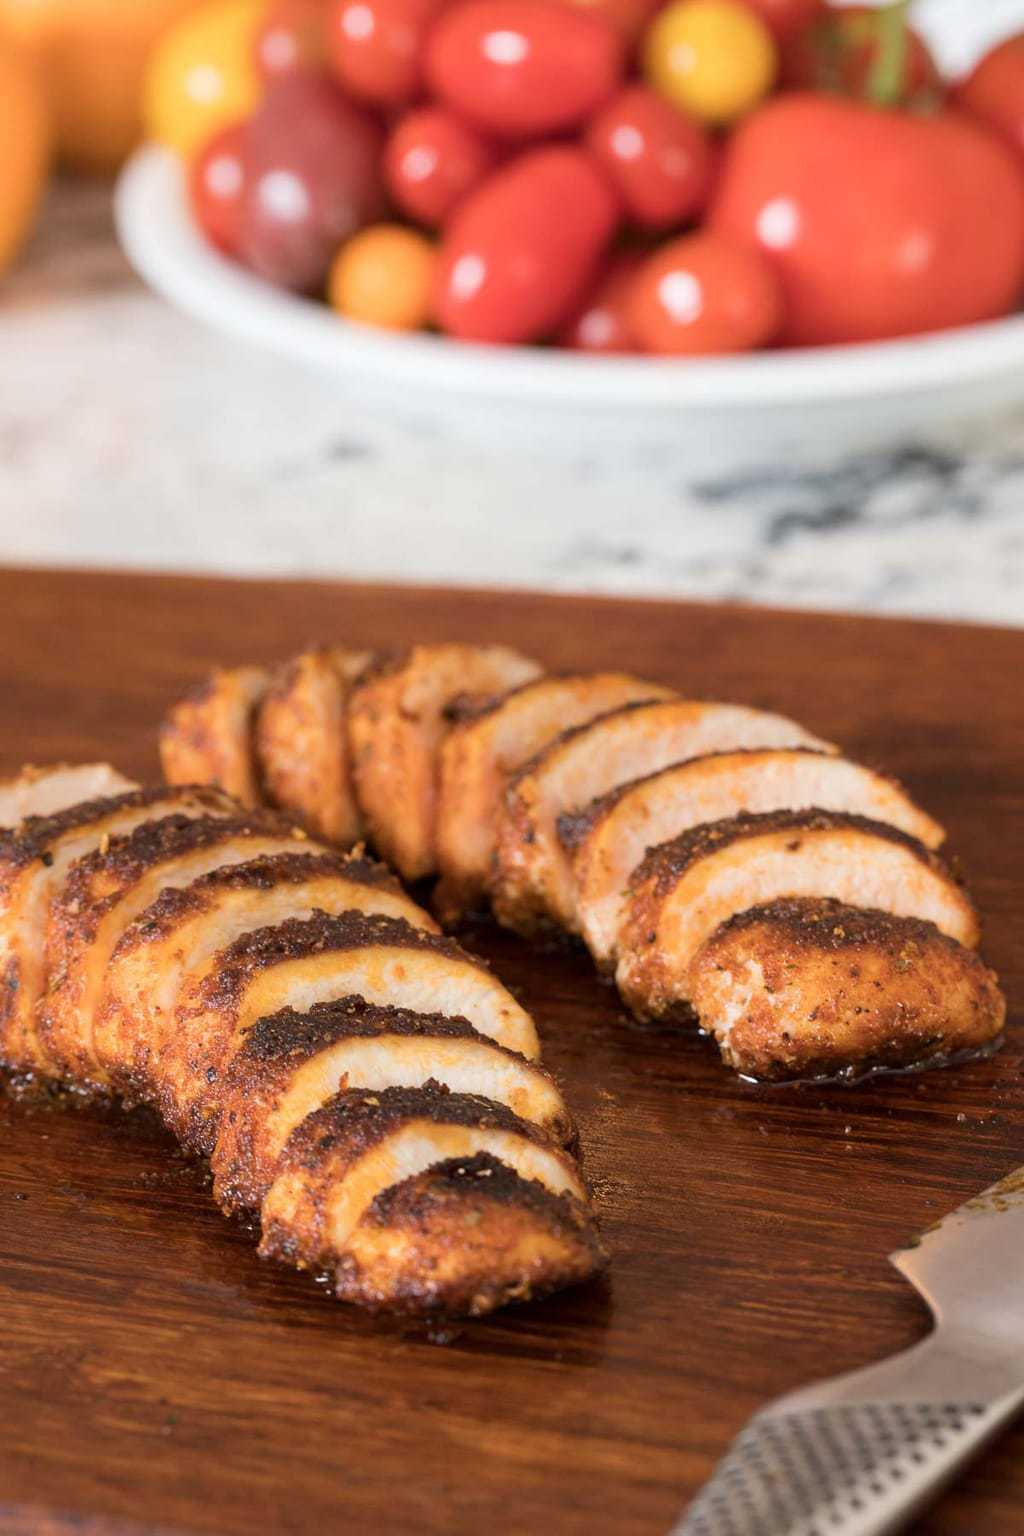 Photo of two Restaurant Style Sautéed Chicken Breasts fanned out on a wood cutting board.